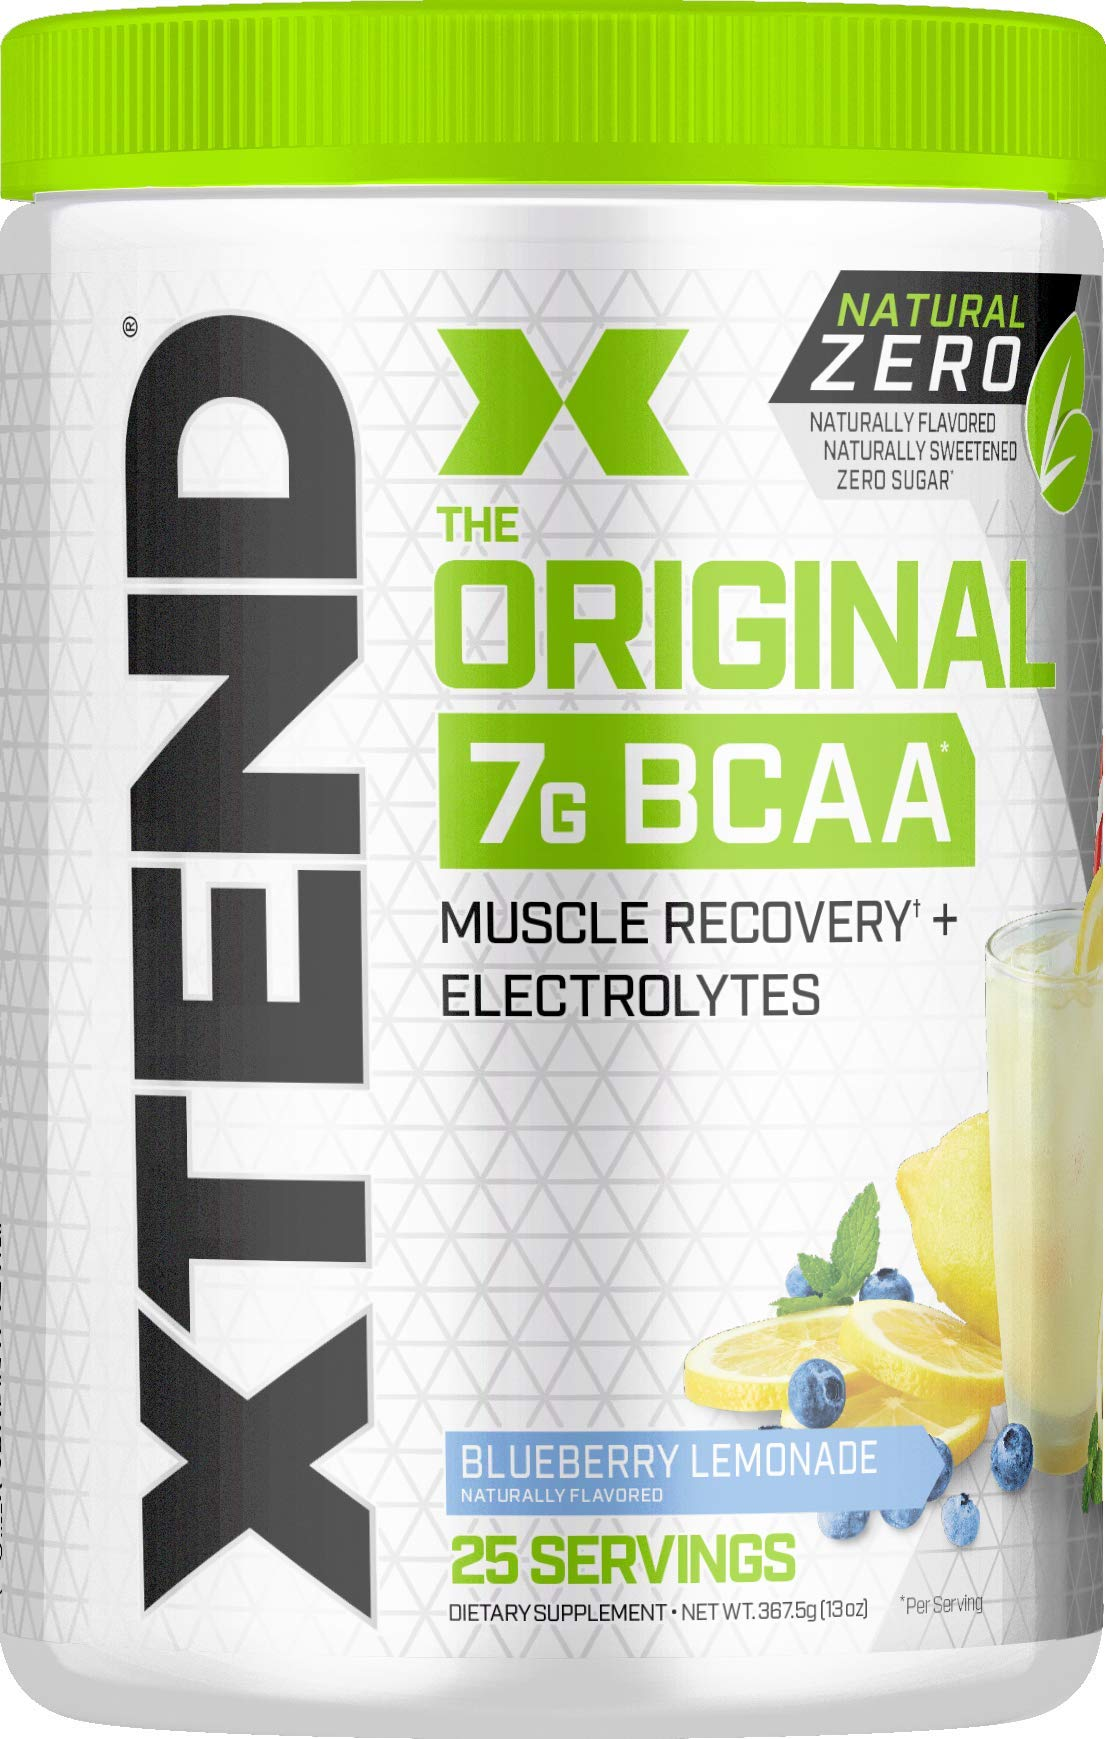 Scivation Xtend Natural Zero BCAA Powder, Branched Chain Amino Acids, BCAAs, No Artificial Colors, Flavors, or Sweeteners, Blueberry Lemonade, 25 Servings